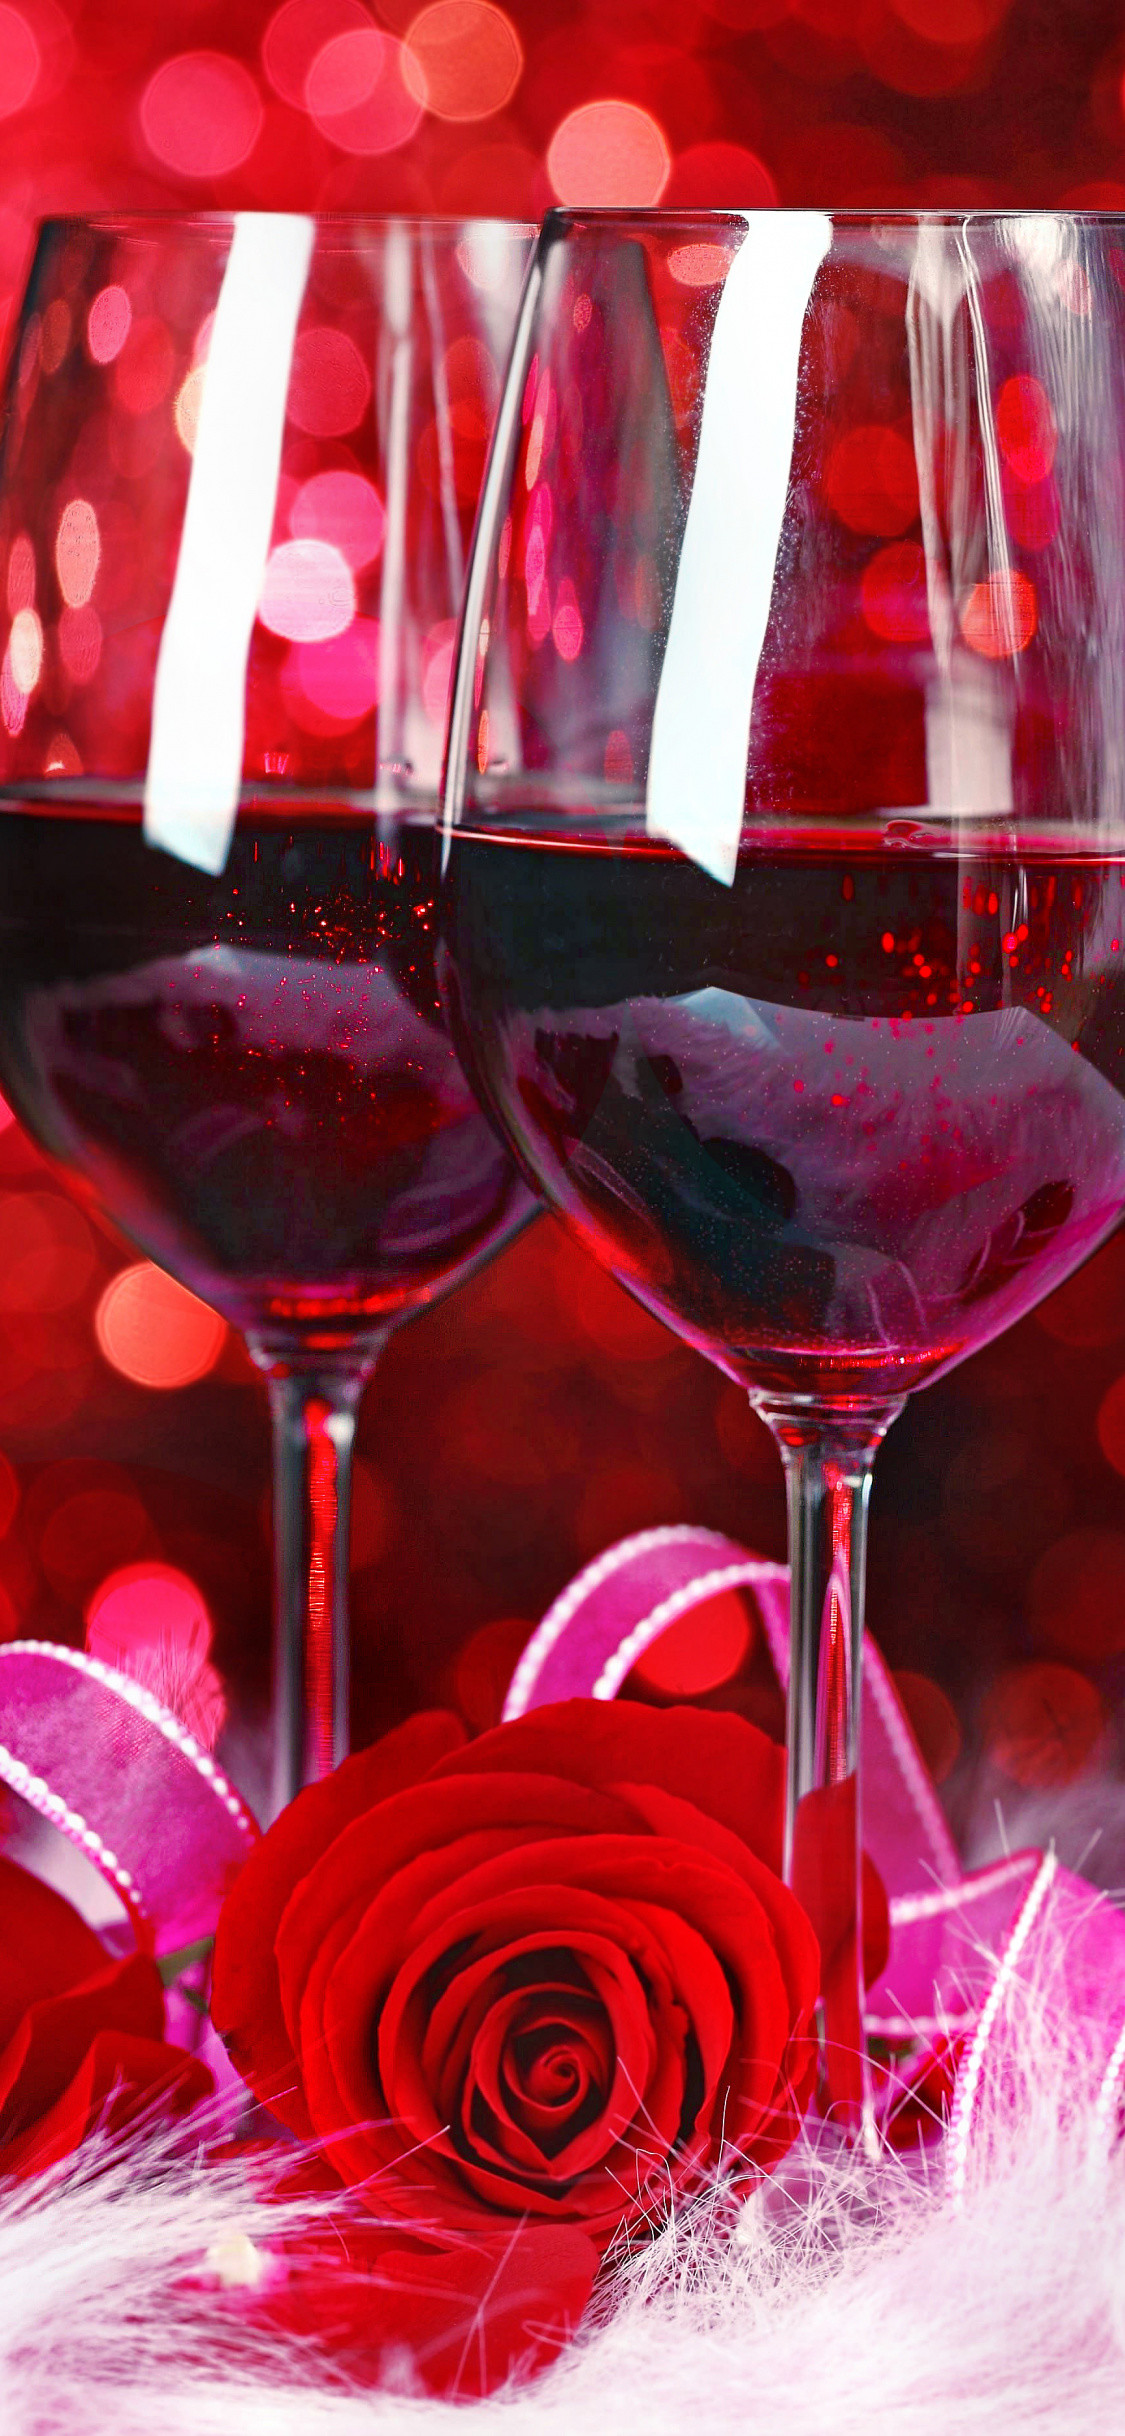 Res: 1125x2436, Wine Glass, Christmas Decoration, Red Wine, Petal, Glass Wallpaper in   Resolution